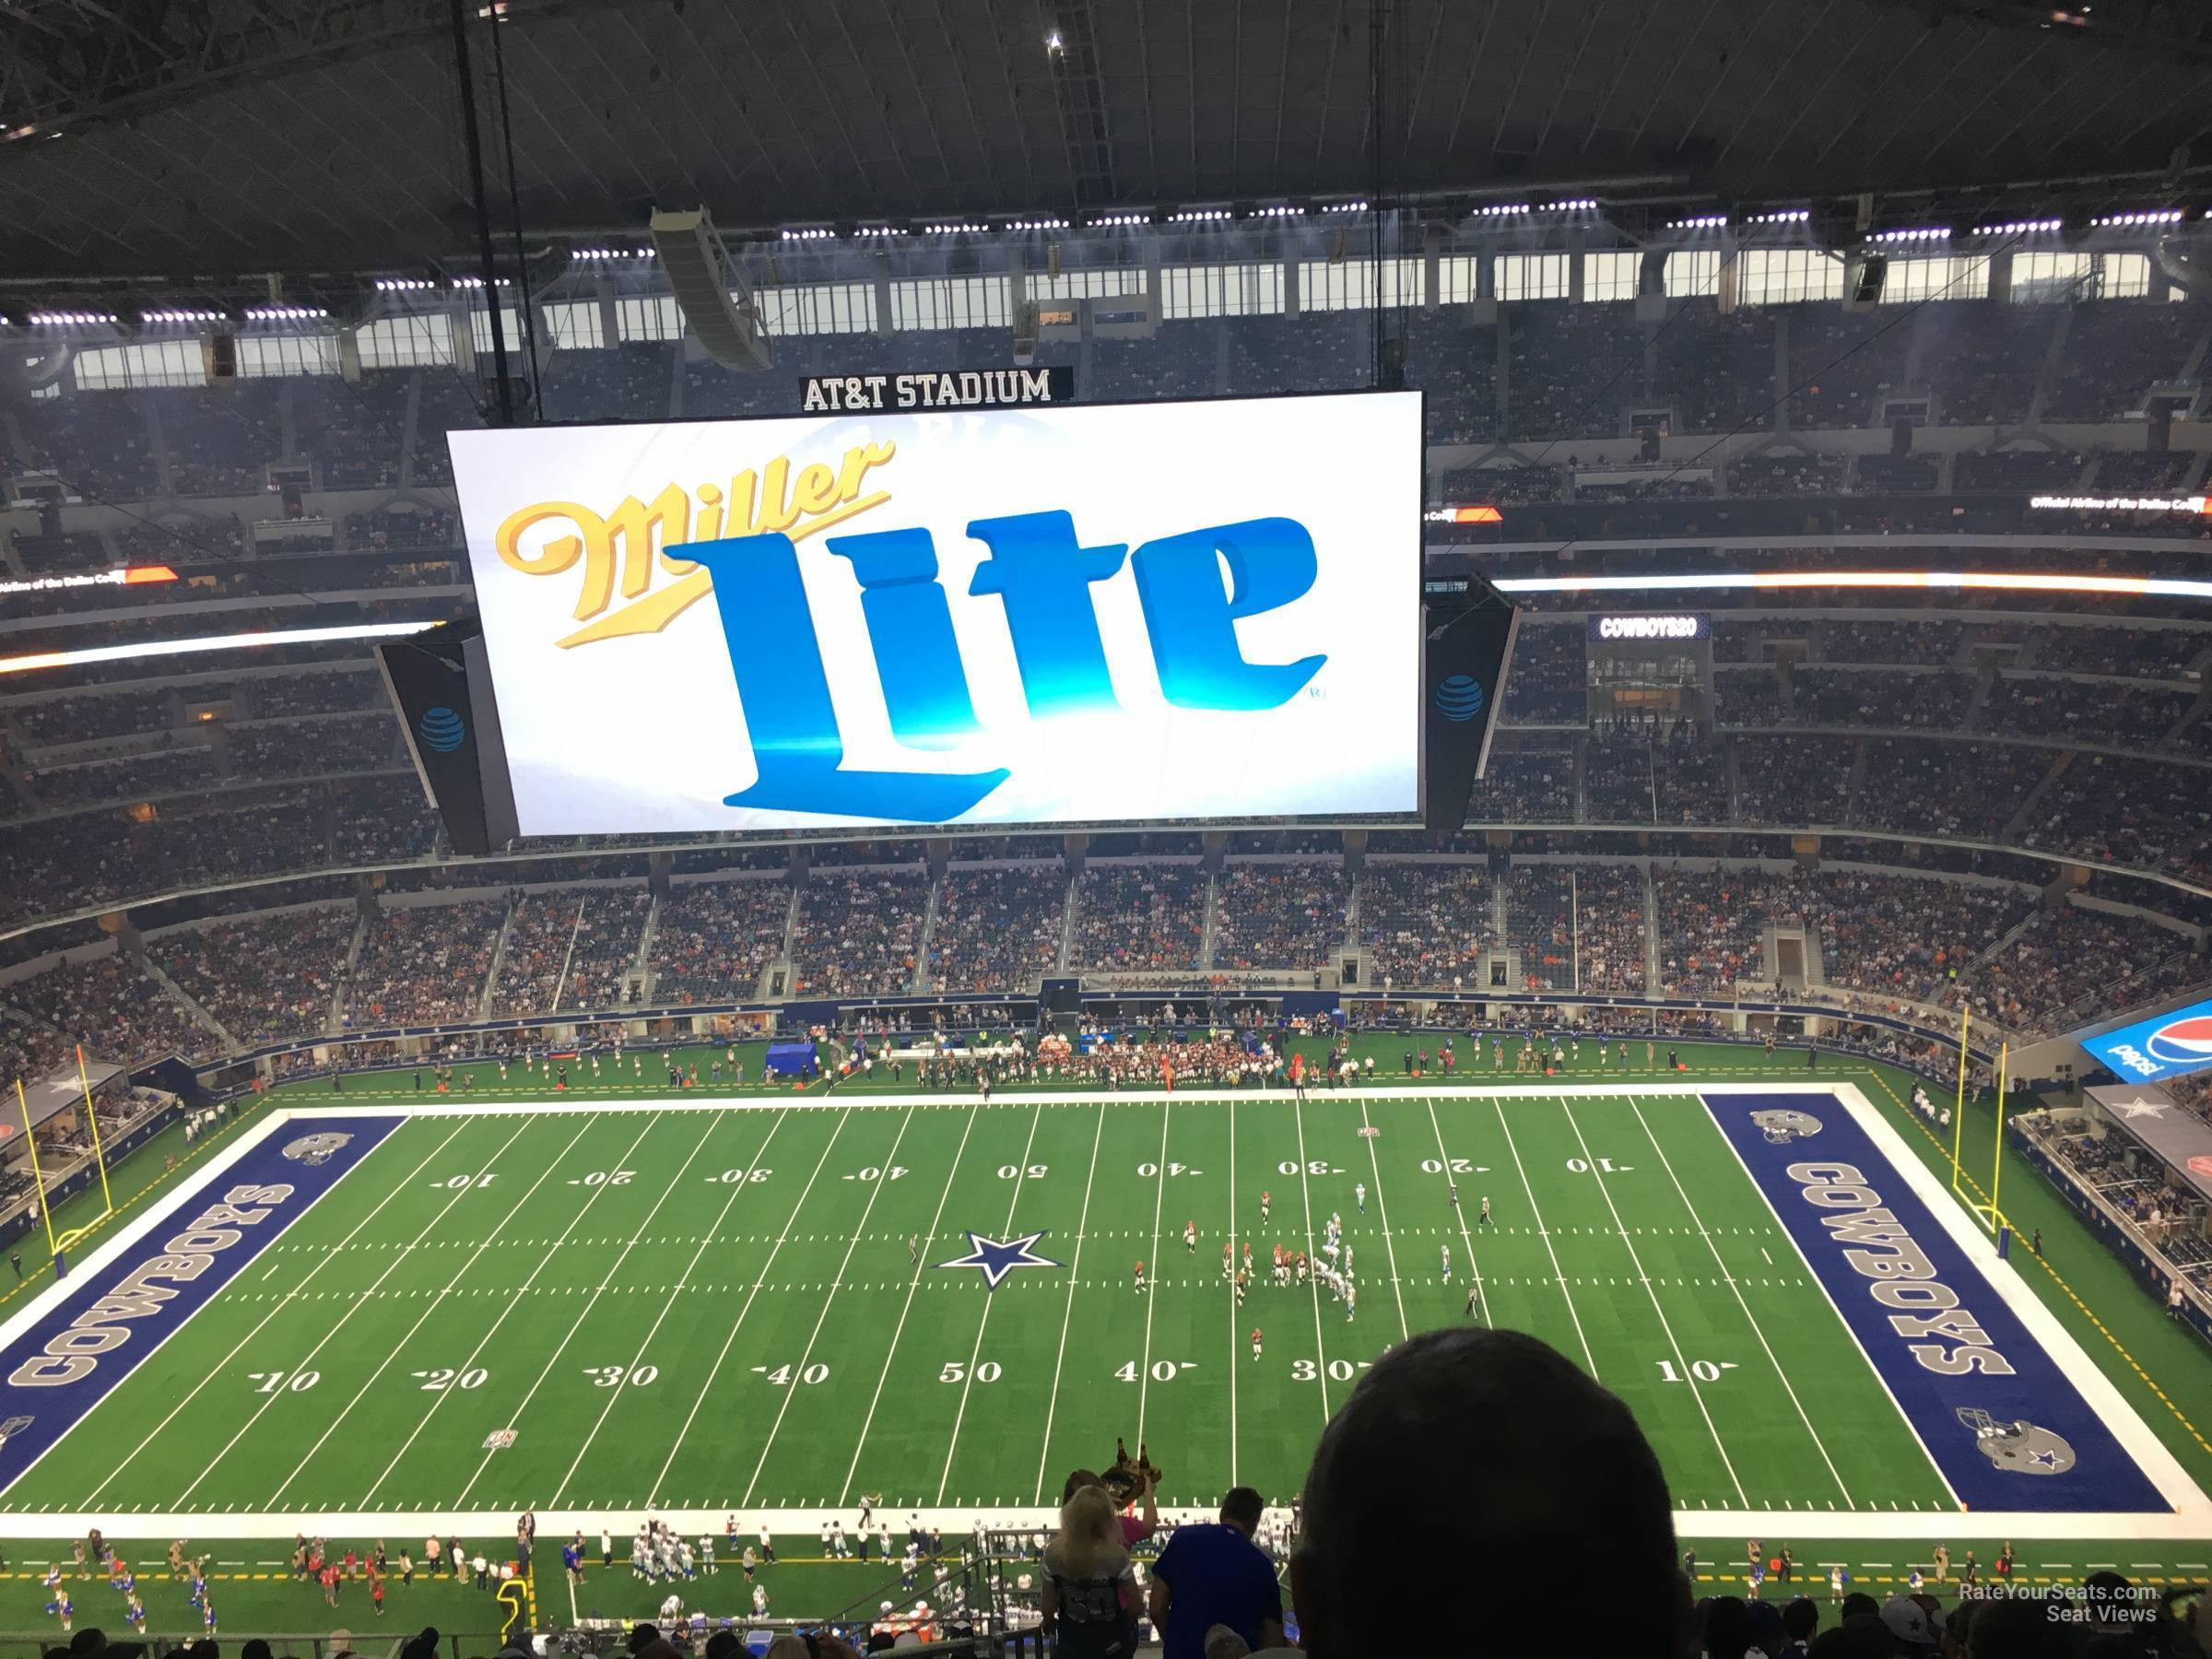 Dallas Cowboys Seat View for AT&T Stadium Section 412, Row 22